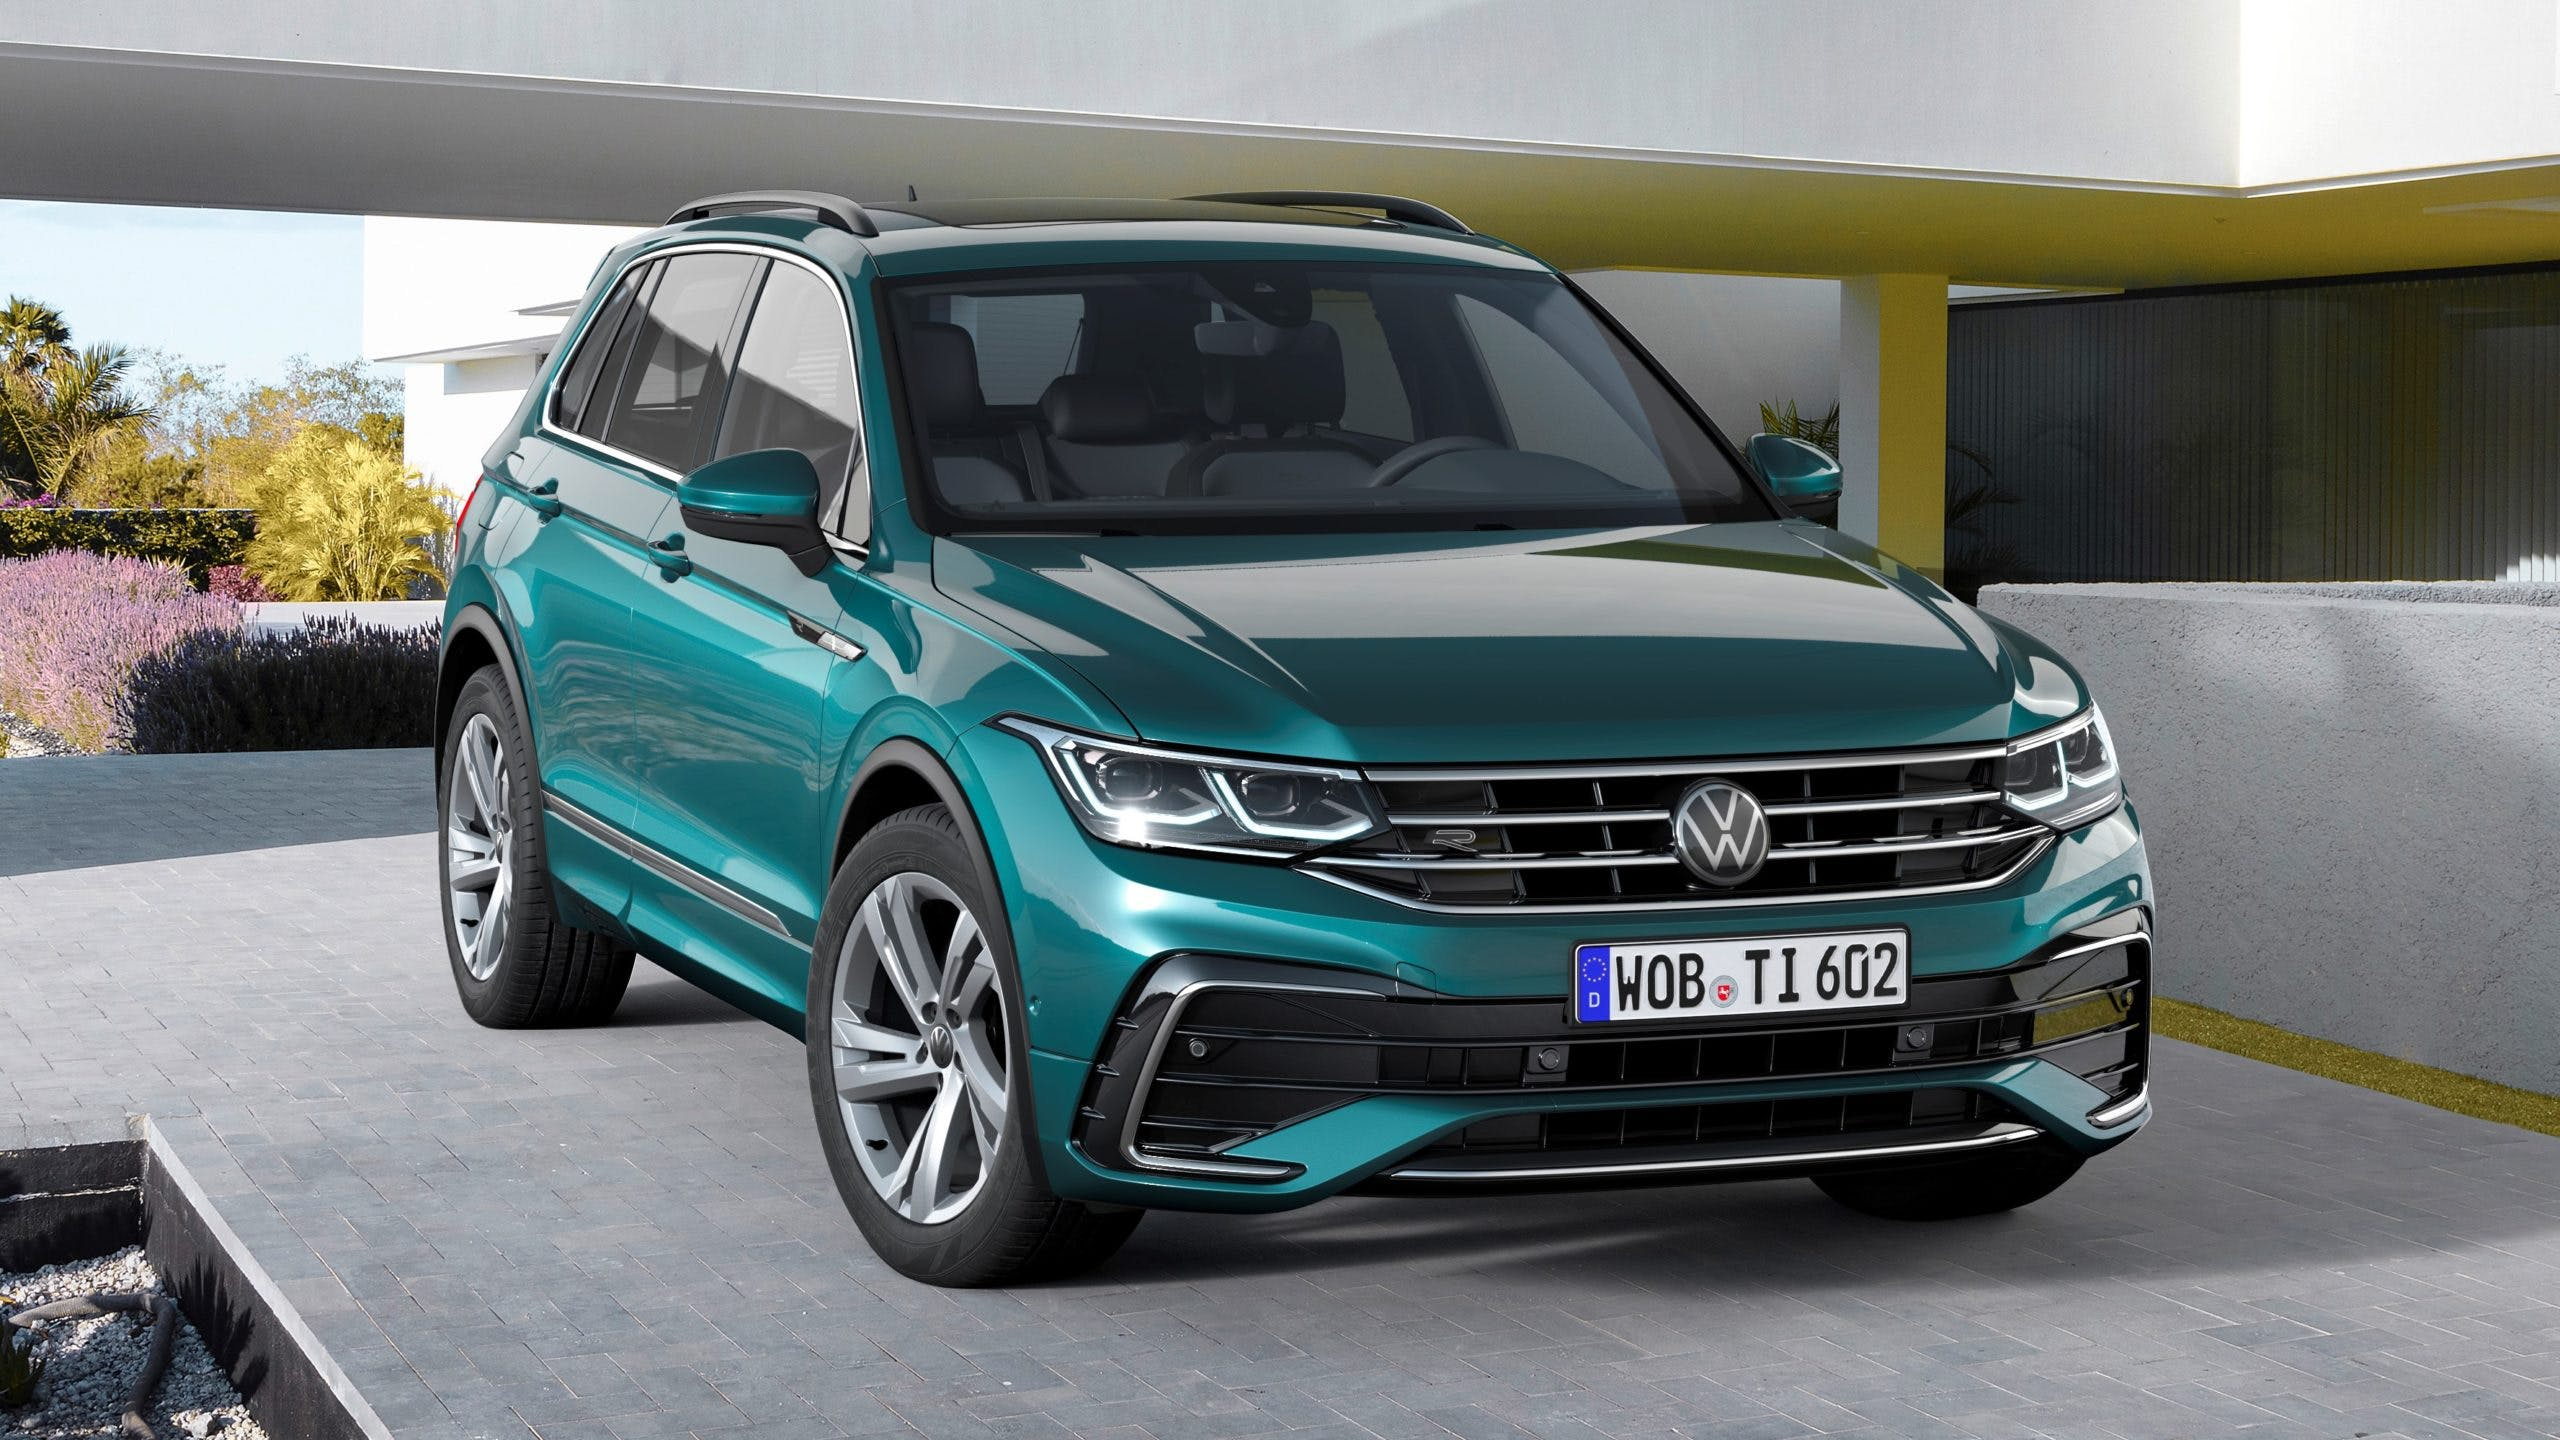 VW Gives the Tiguan a Refresh, More Tech for 2022